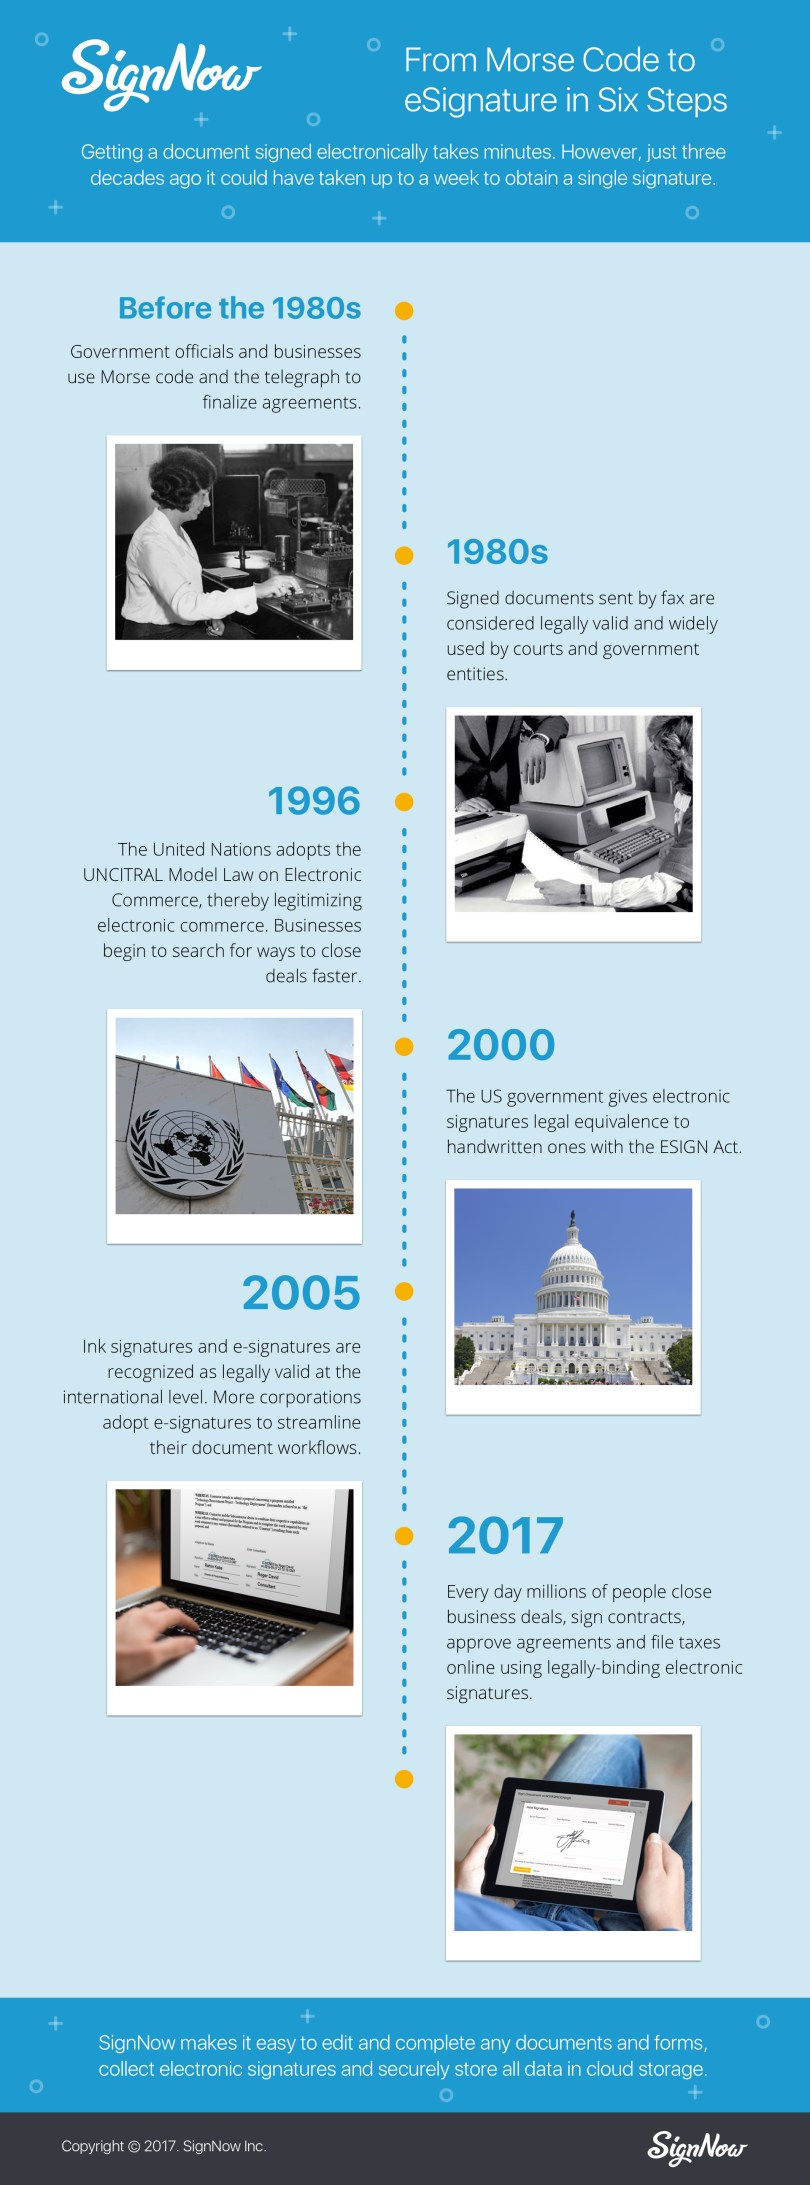 Brief history of electronic signature